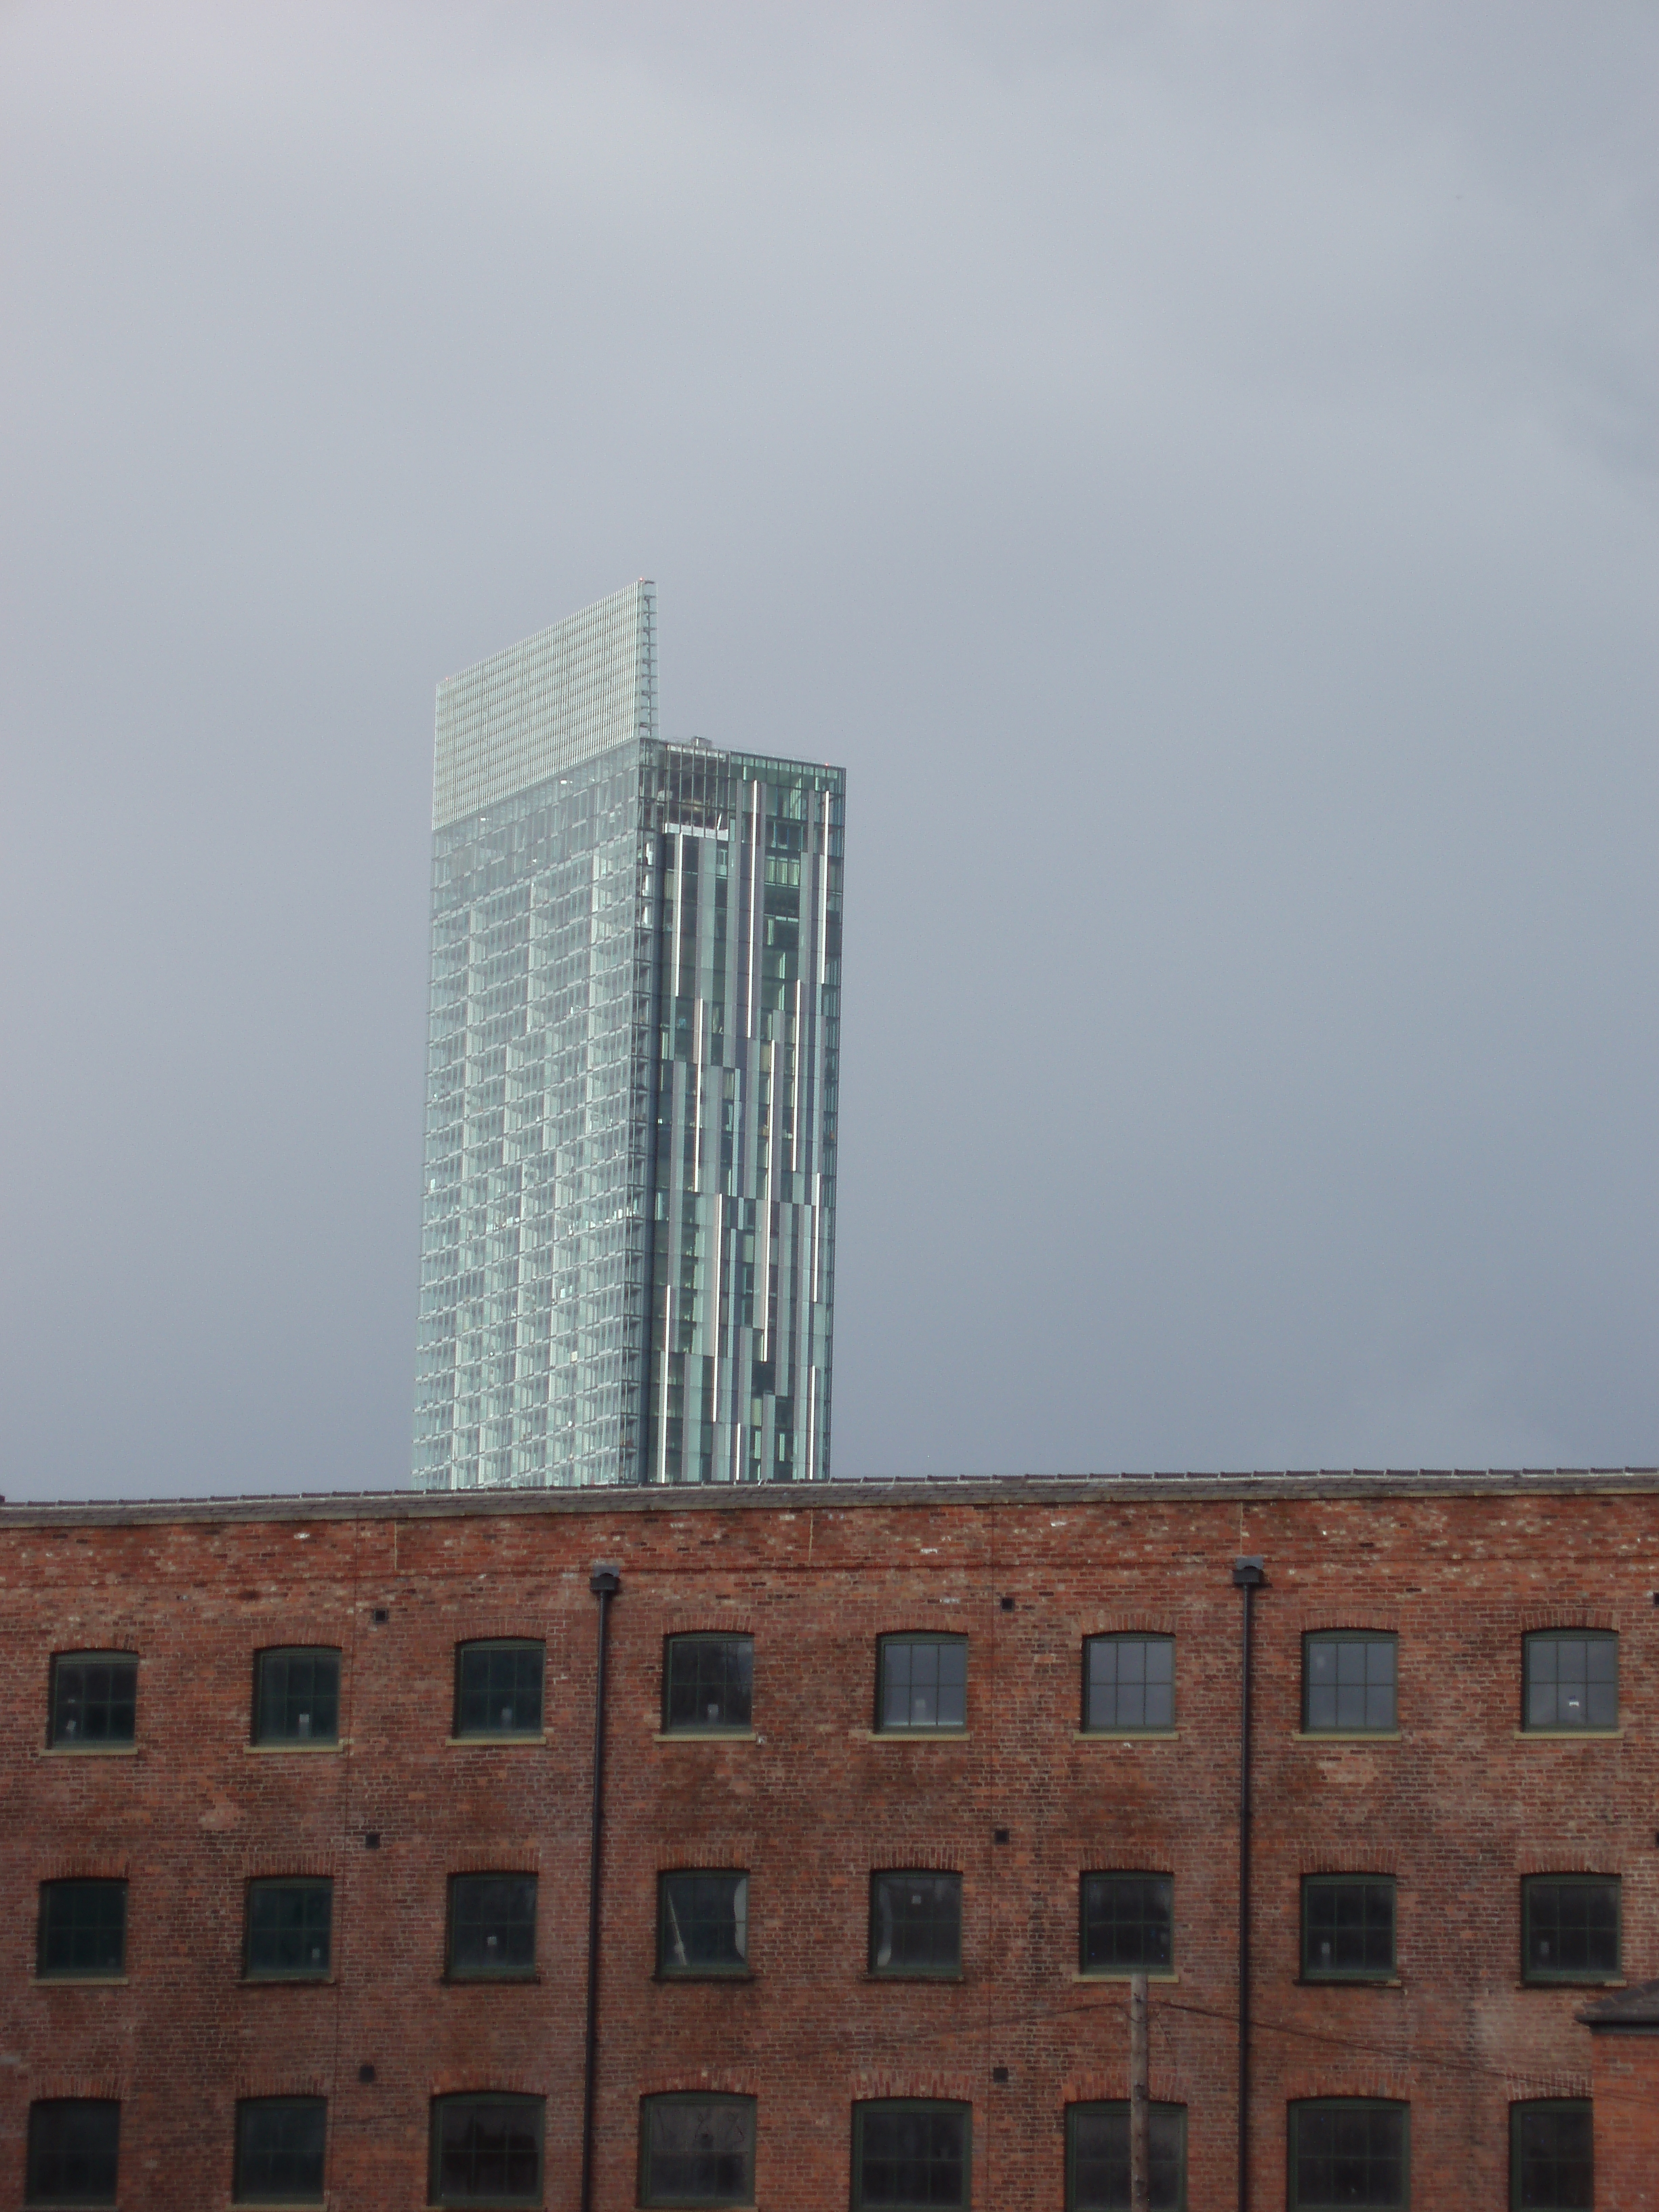 Manchester hotel and appartments and brick warehouse